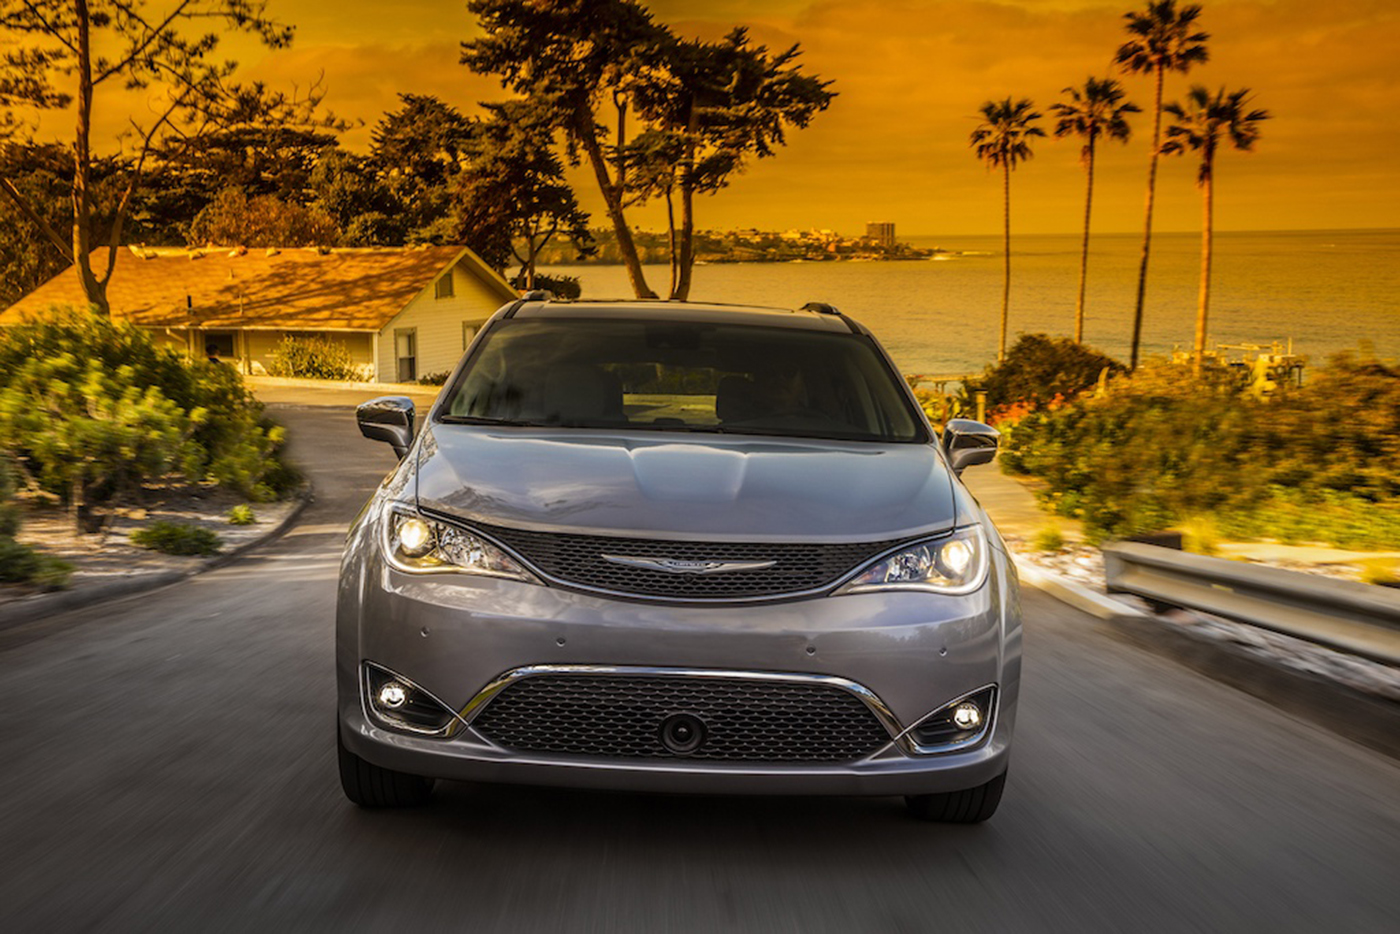 chrysler-pacifica-2017.jpg